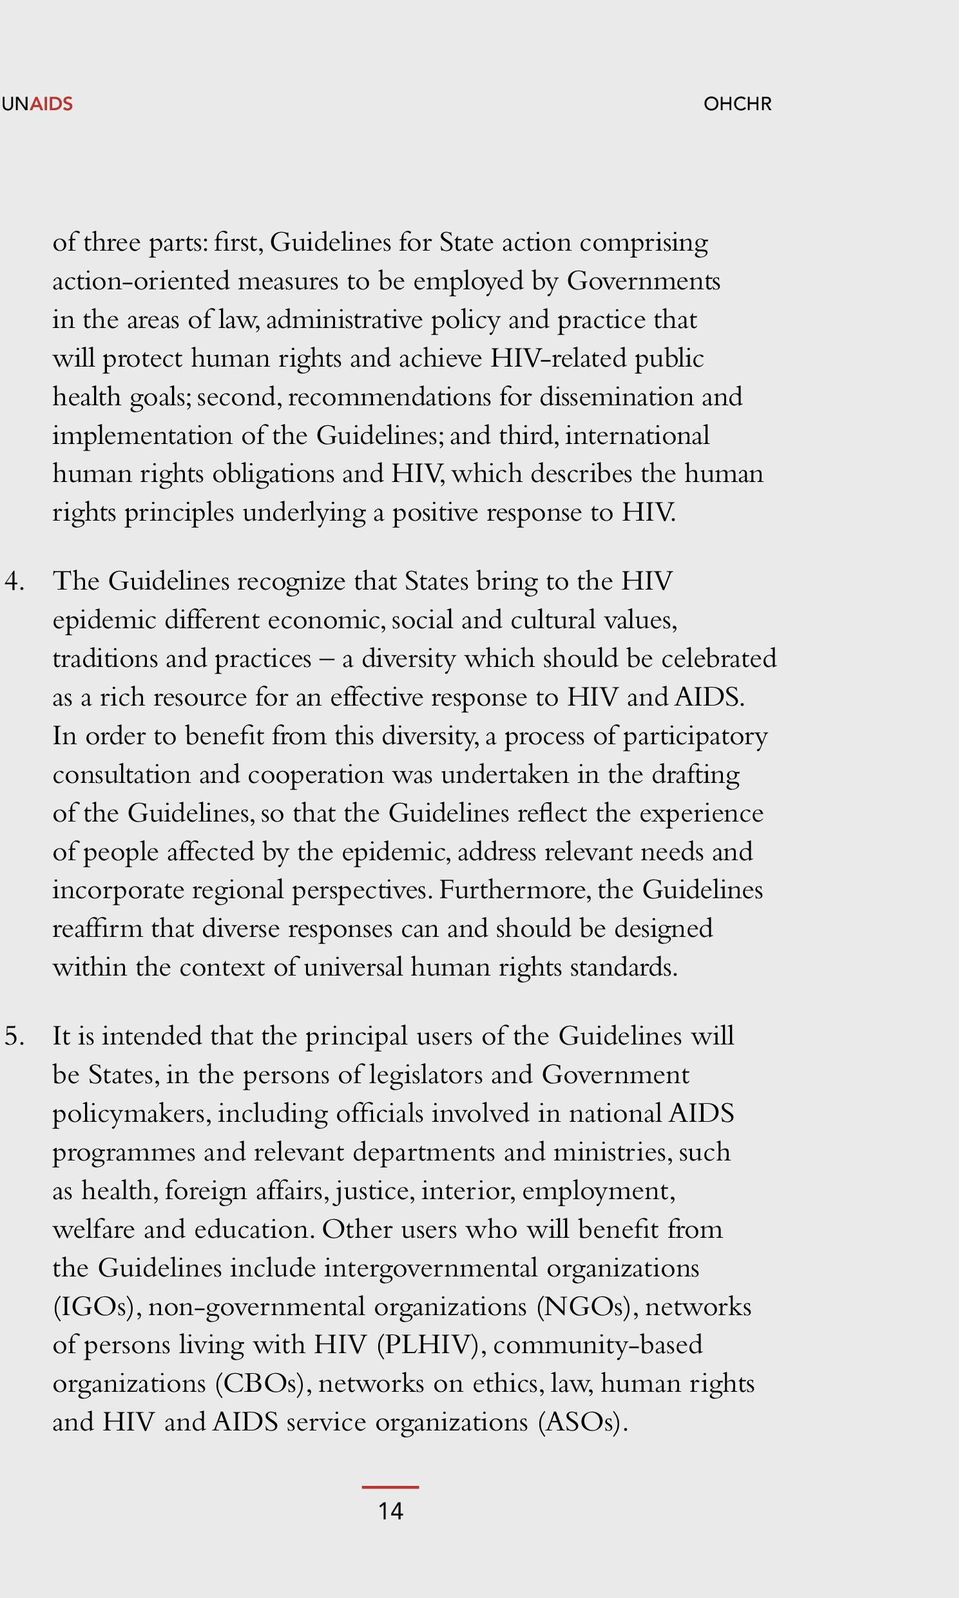 HIV, which describes the human rights principles underlying a positive response to HIV. 4.